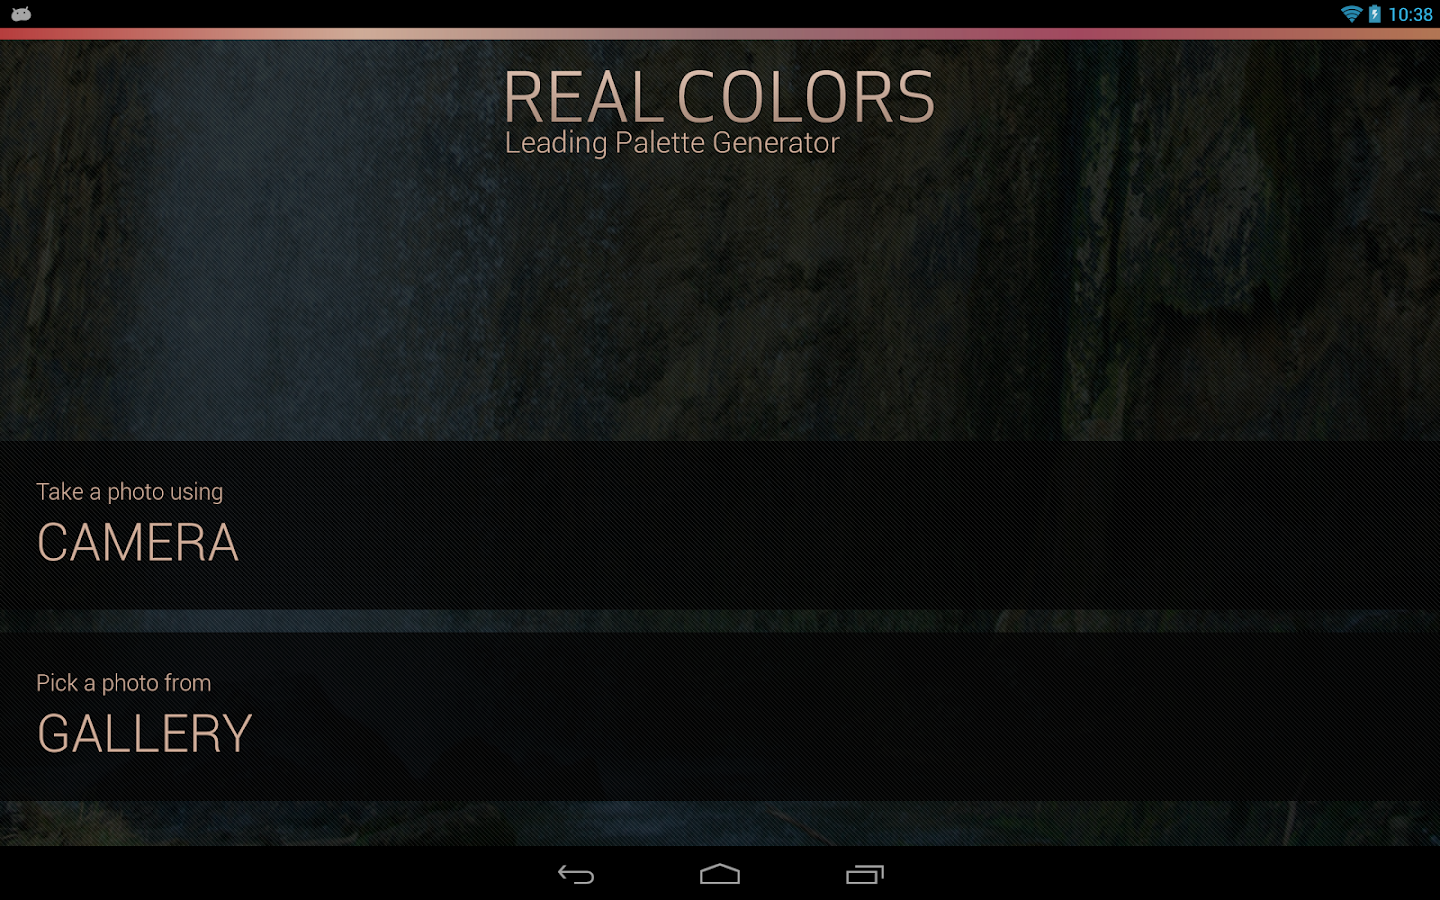 Real Colors Pro Screenshot 15